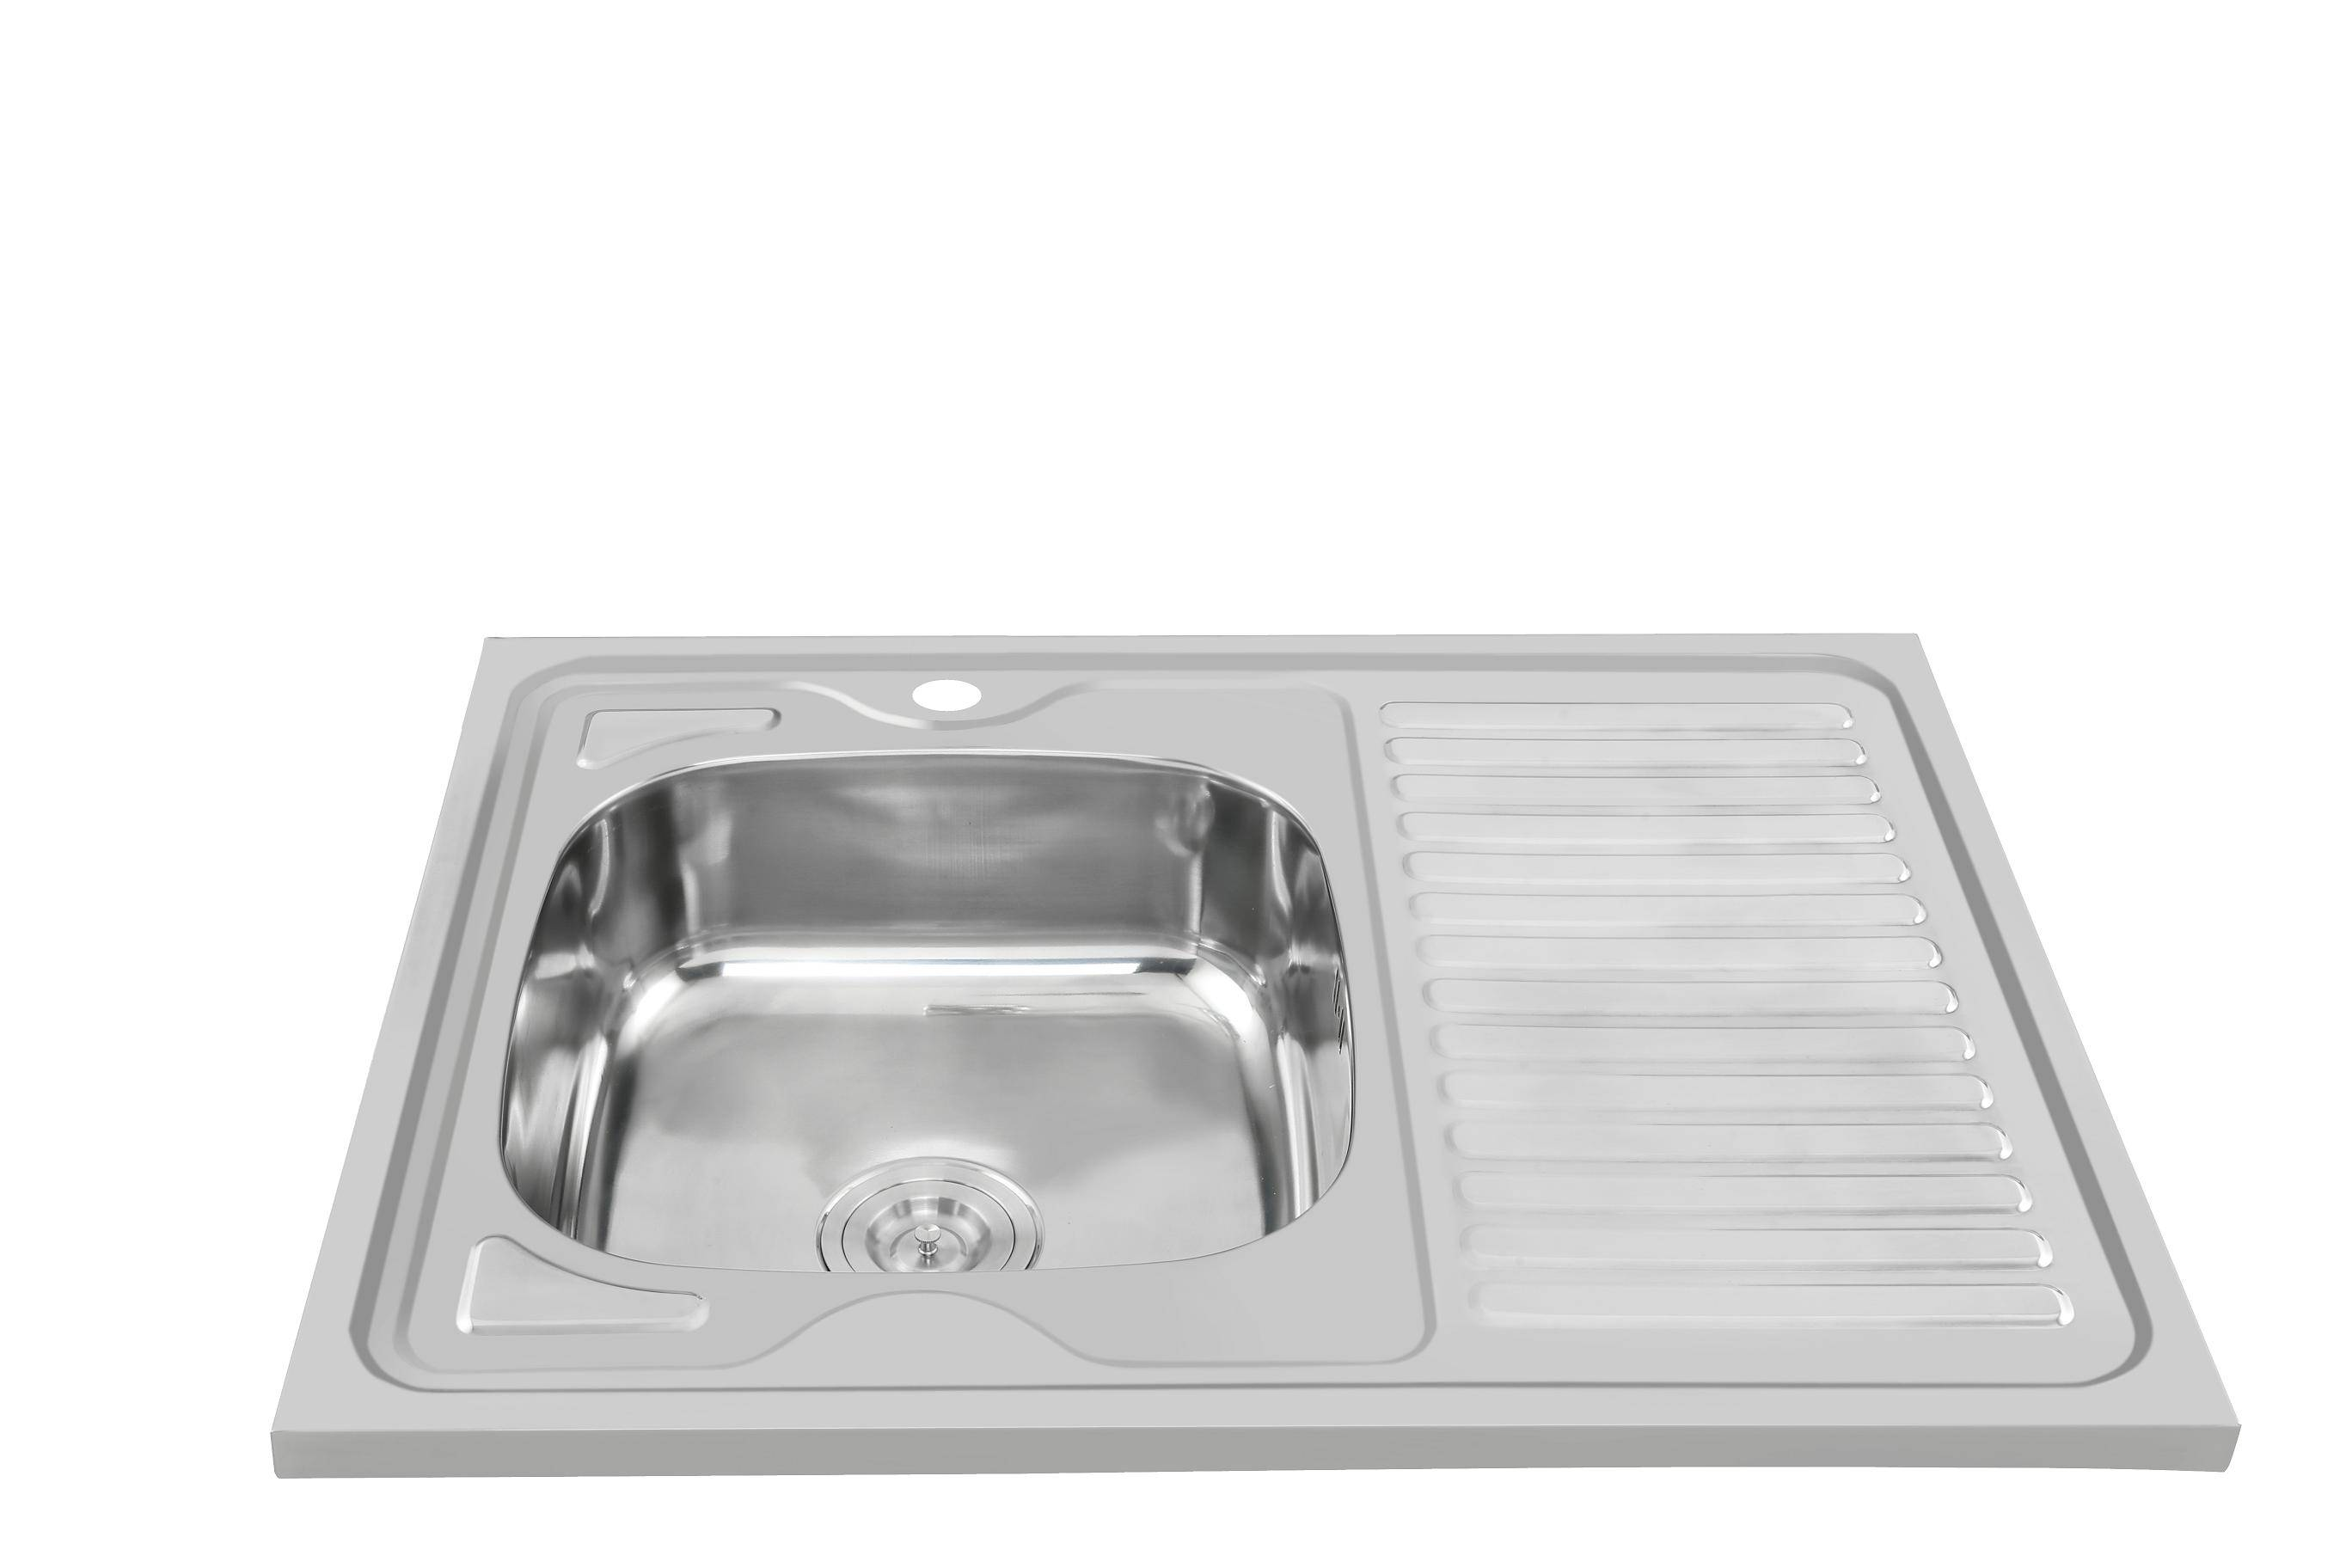 Quallity guaranteed factory supply kitchen sink WY-8060SA